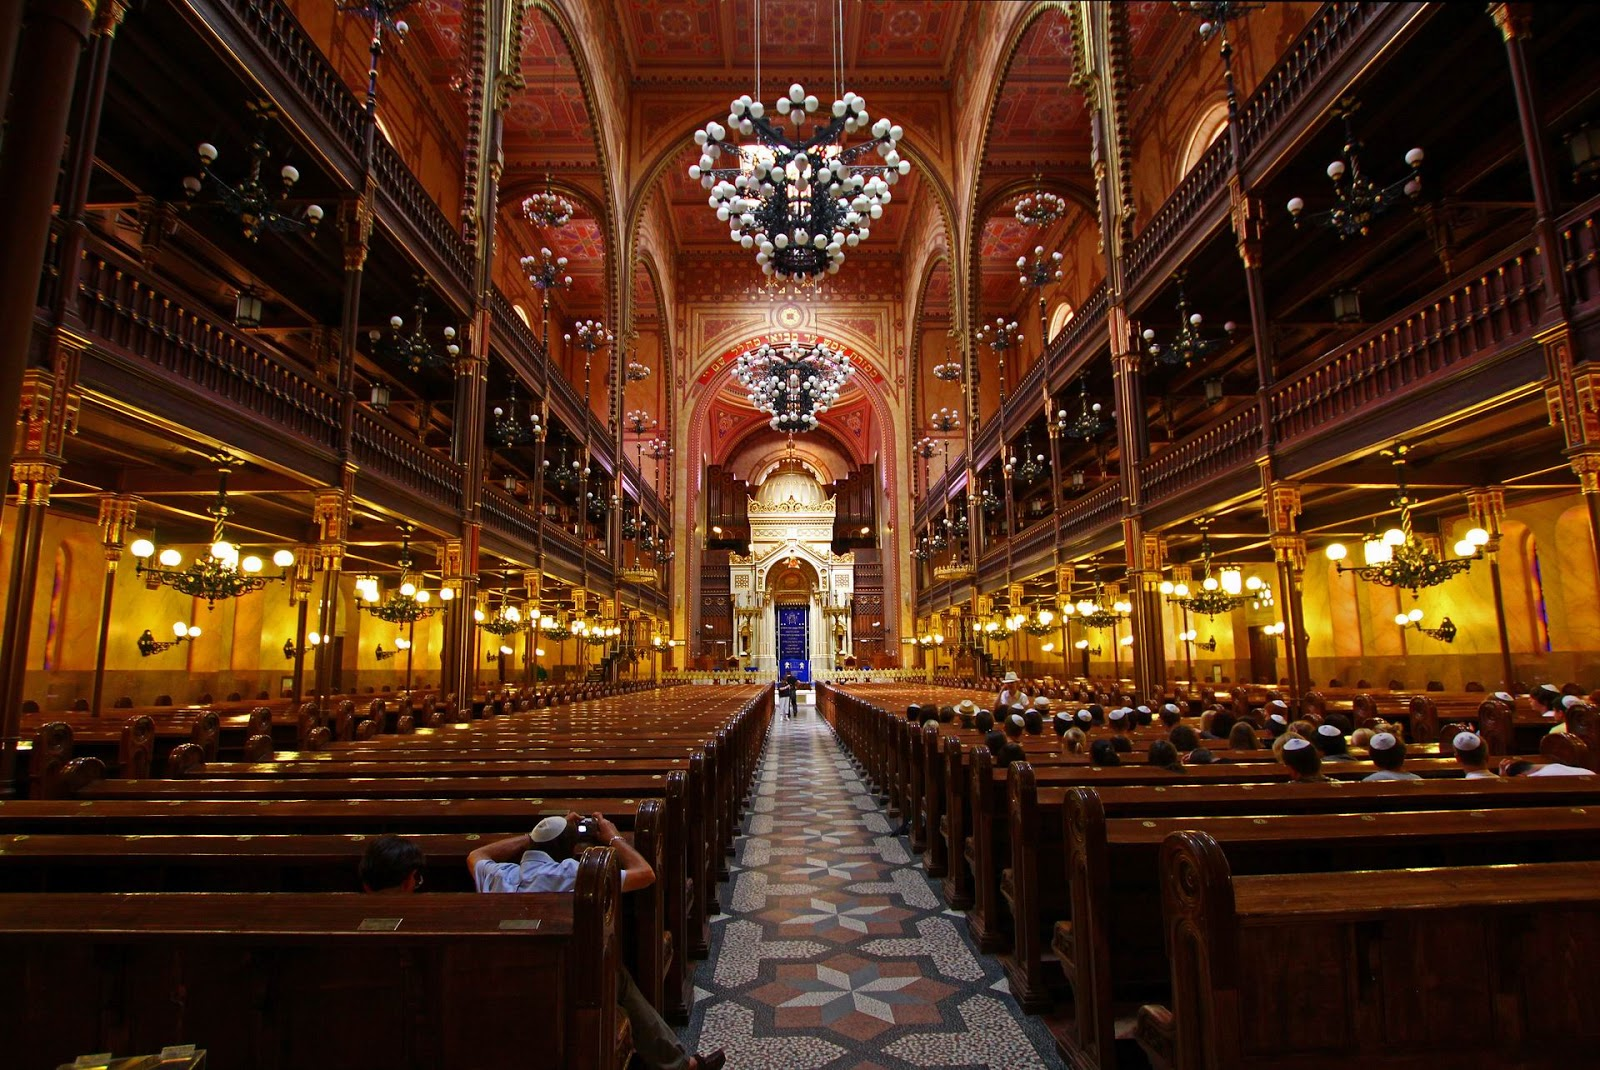 Central Europe: Dohany Street Synagogue, Budapest